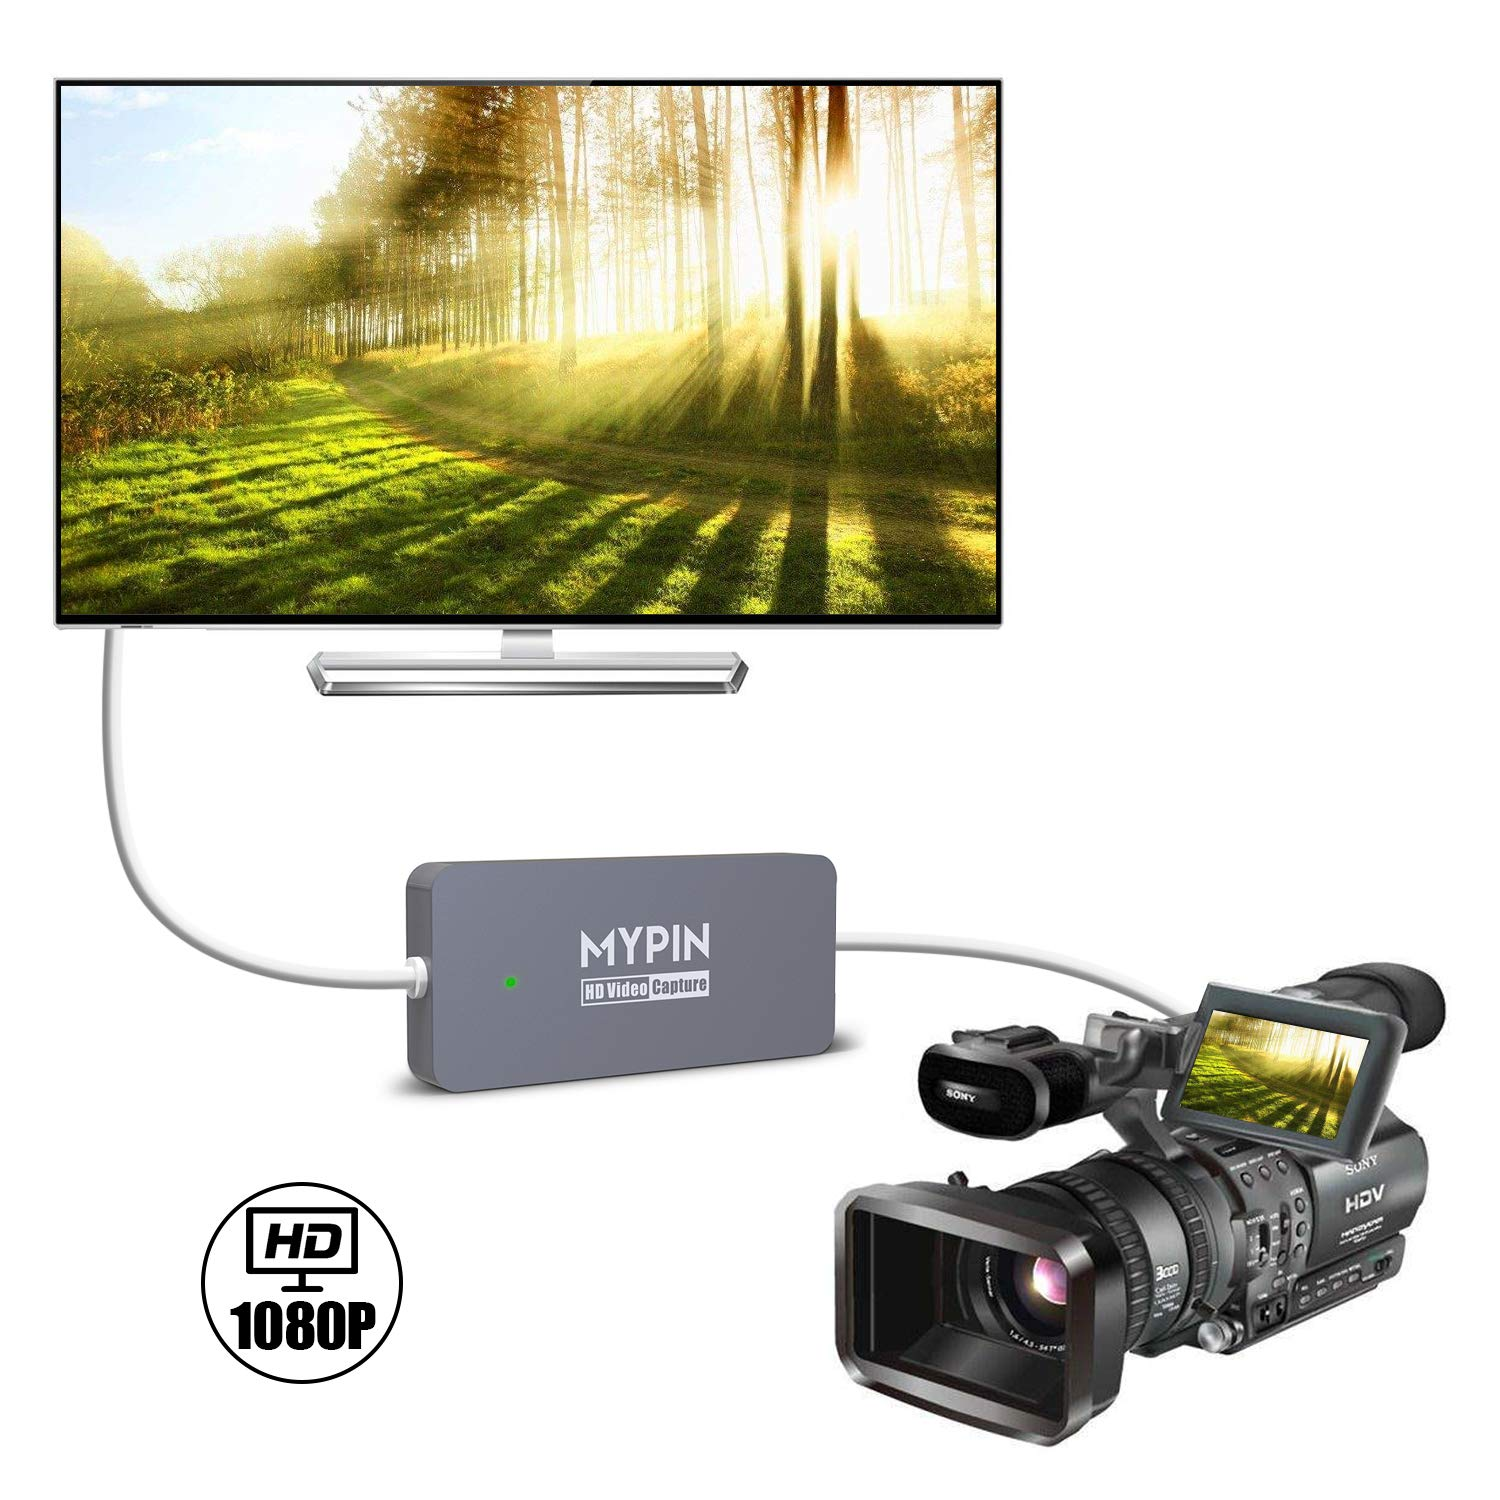 MYPIN USB3 0 Type-C HD Game Video Capture Card HDMI 1080P 60FPS Recorder  Video from Gaming Console, Camcorder, DSLR to Android/Windows/Mac  Ultra  Low